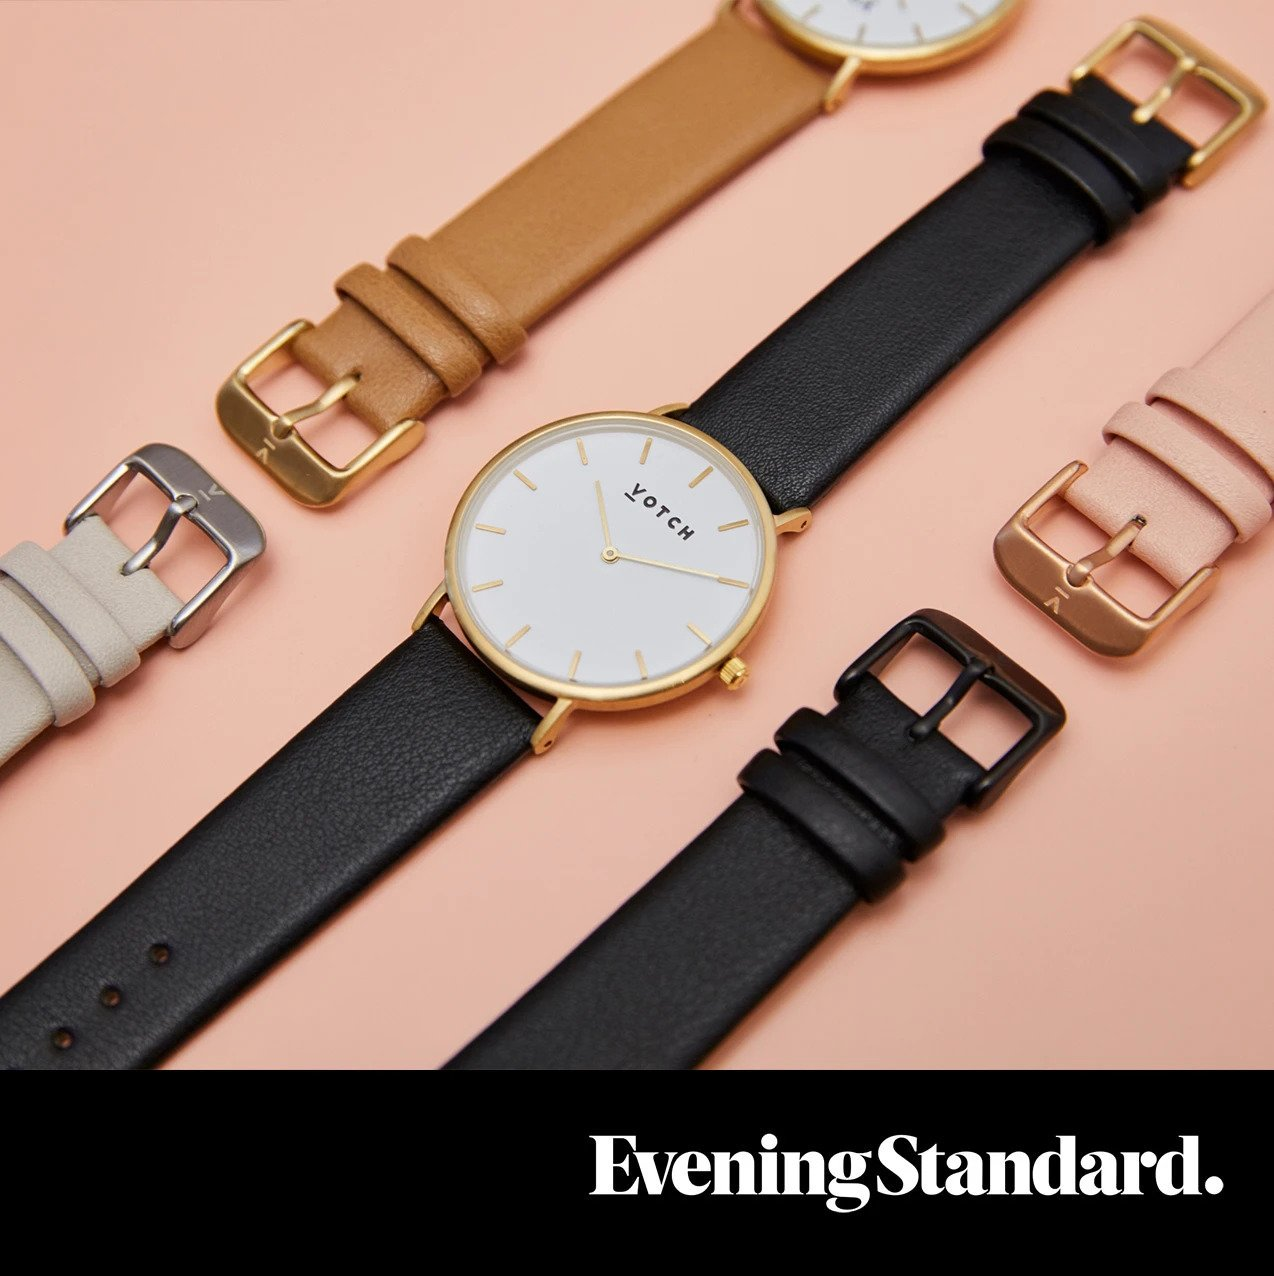 Evening_Standard_-_At_Sellers_With_A_Story_-_Votch